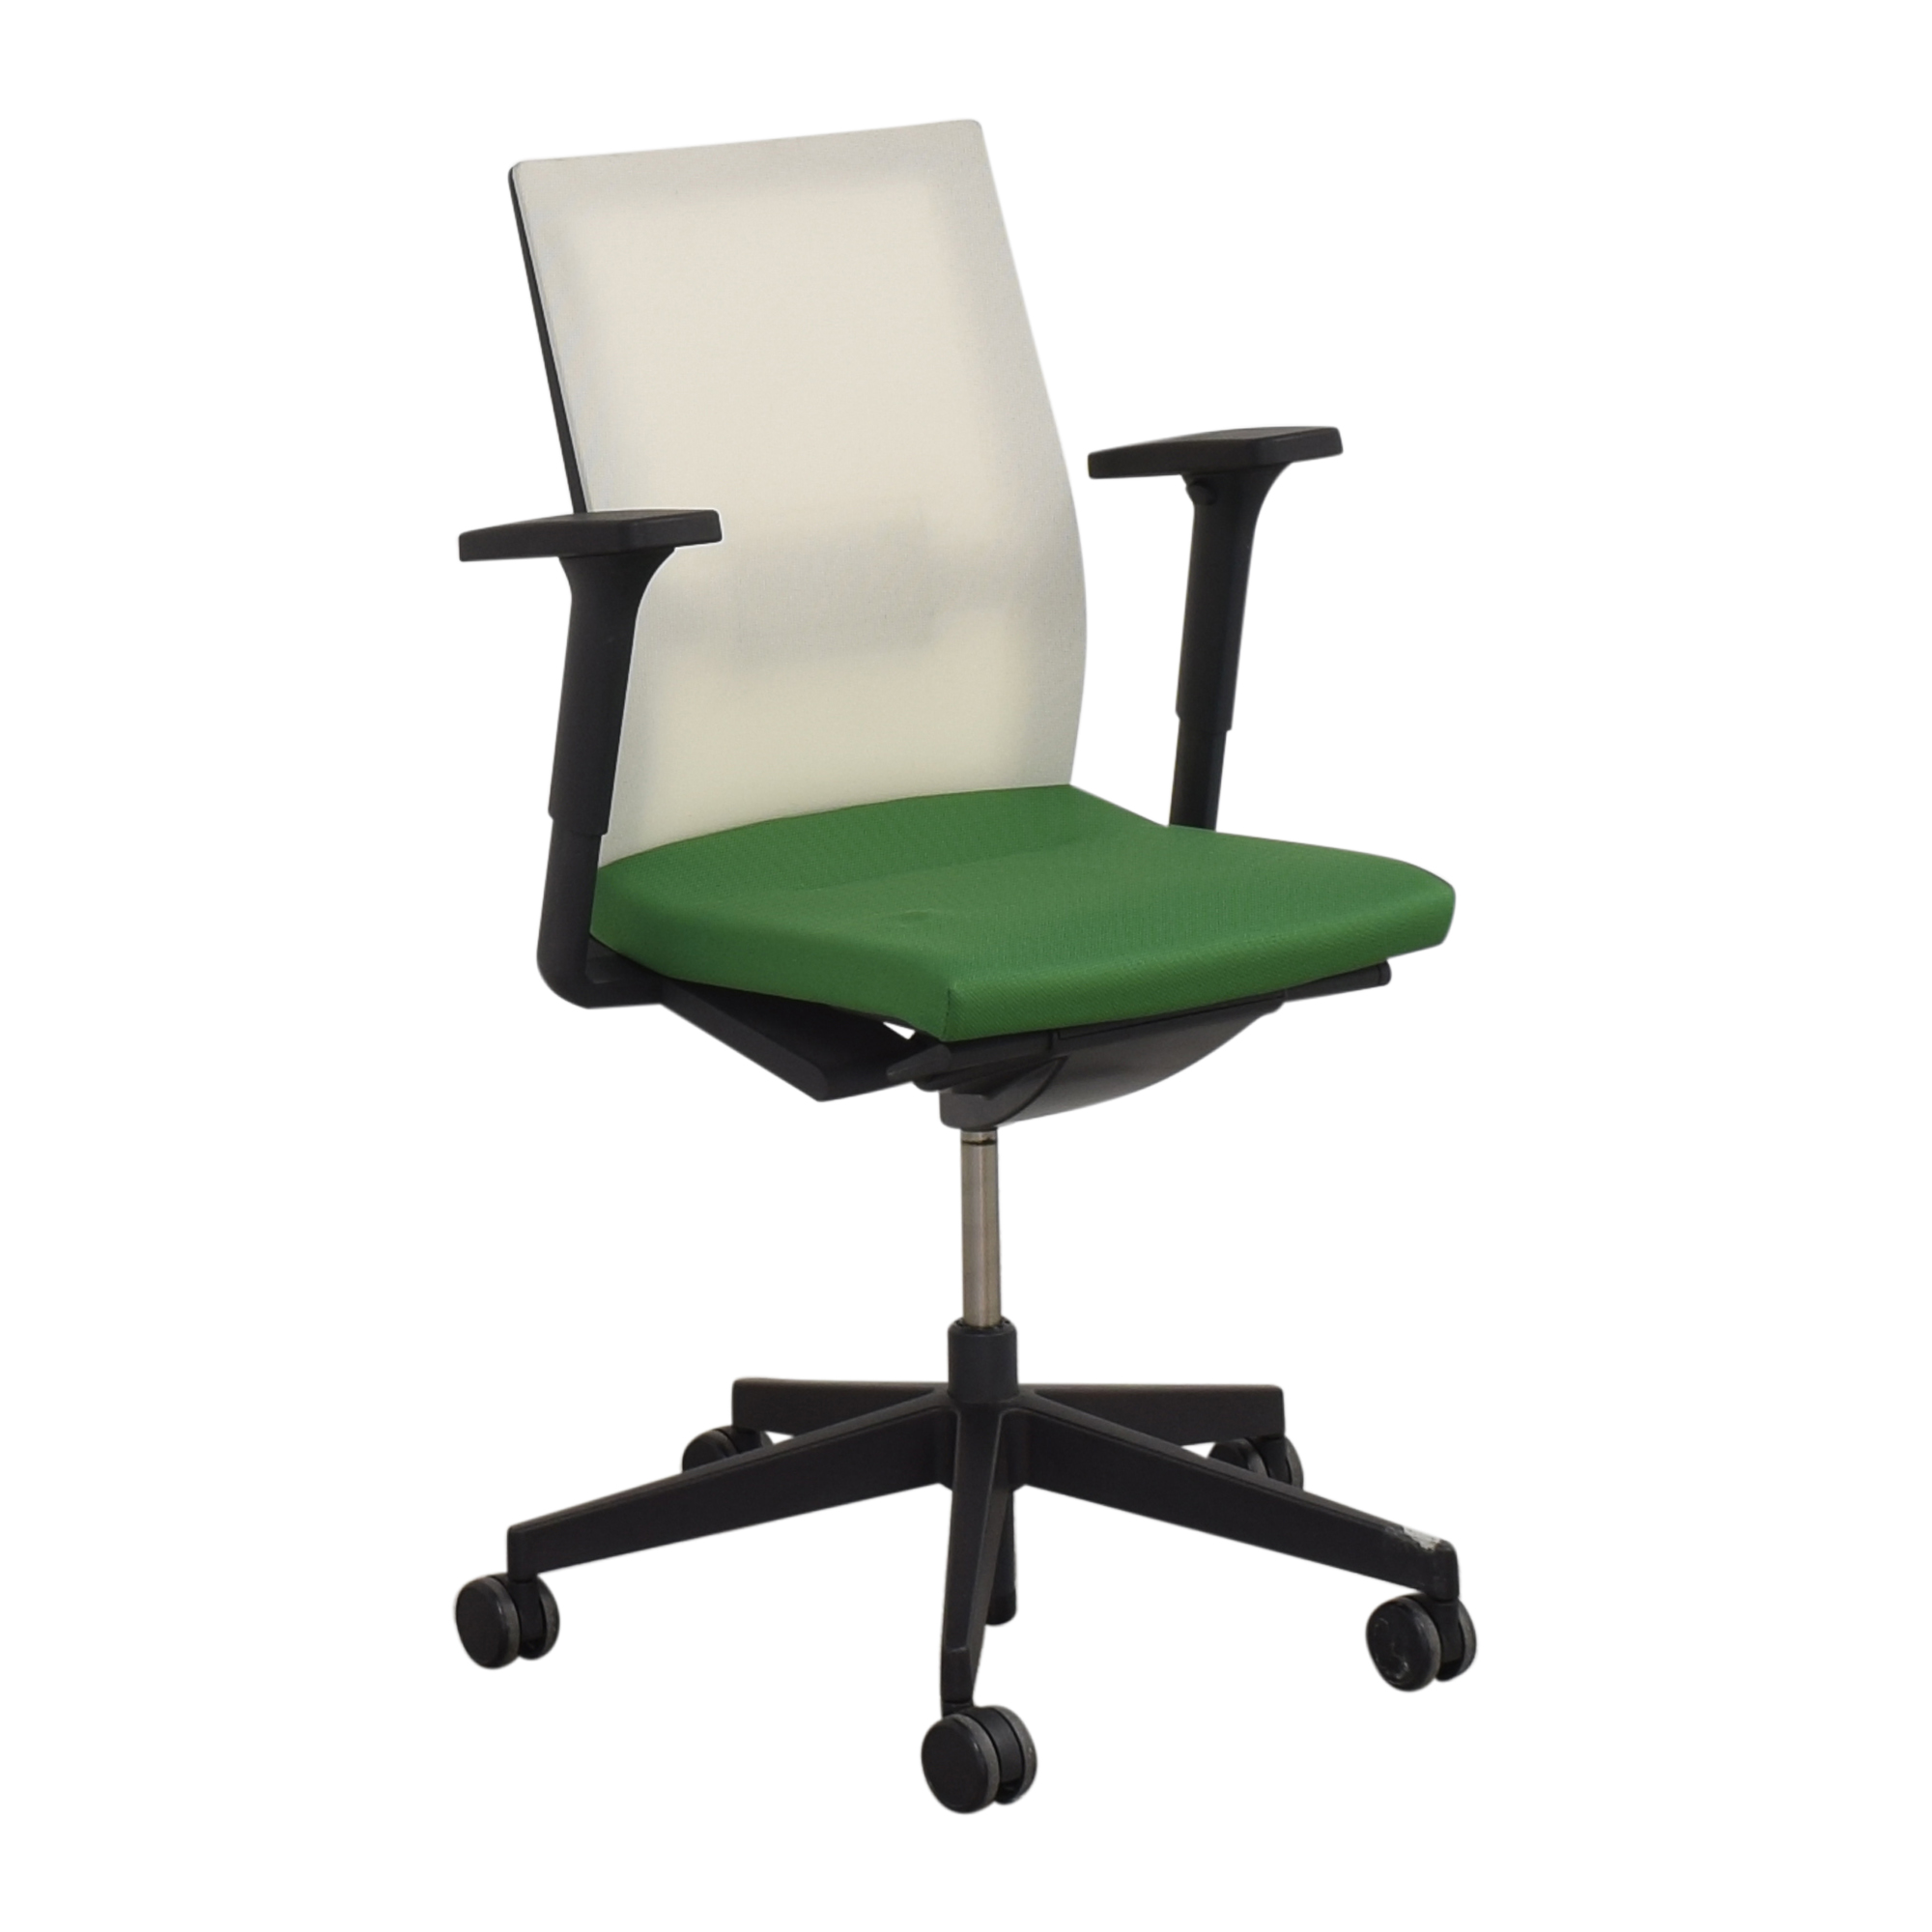 46 Off Vitra Vitra Swivel Home Office Chair Chairs